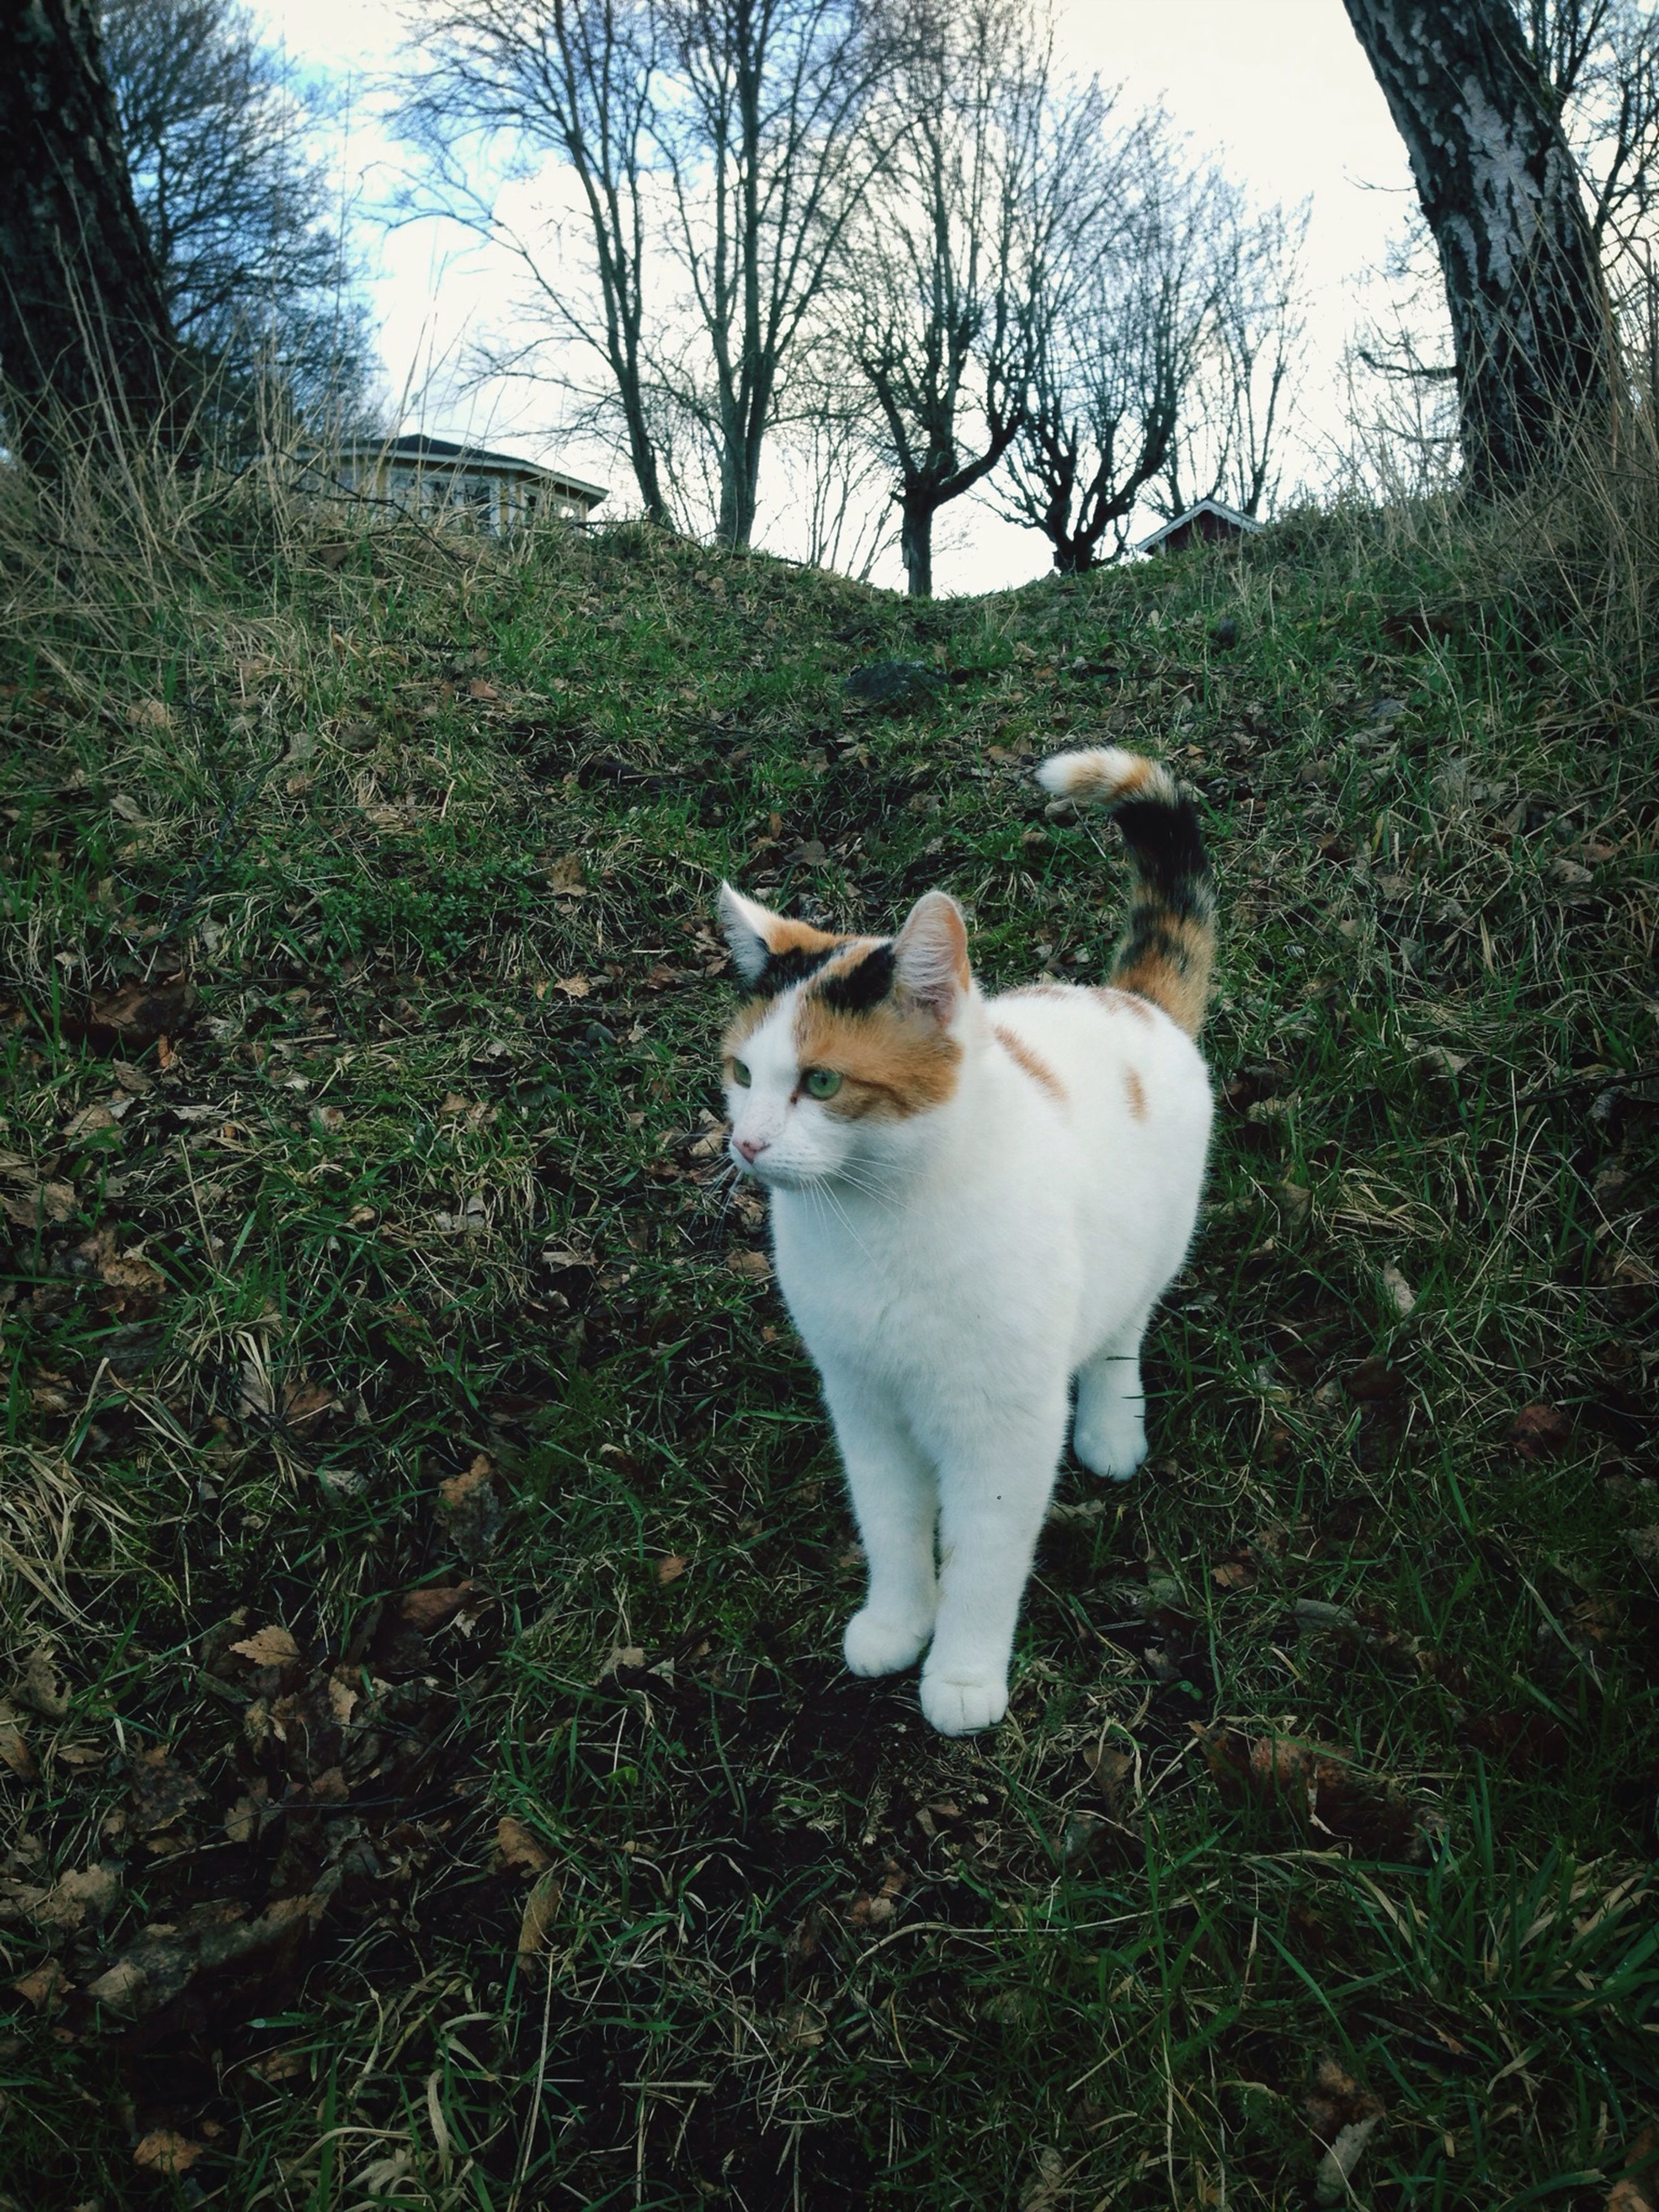 domestic animals, pets, mammal, animal themes, one animal, grass, dog, field, domestic cat, grassy, cat, standing, nature, tree, day, full length, outdoors, no people, sunlight, growth